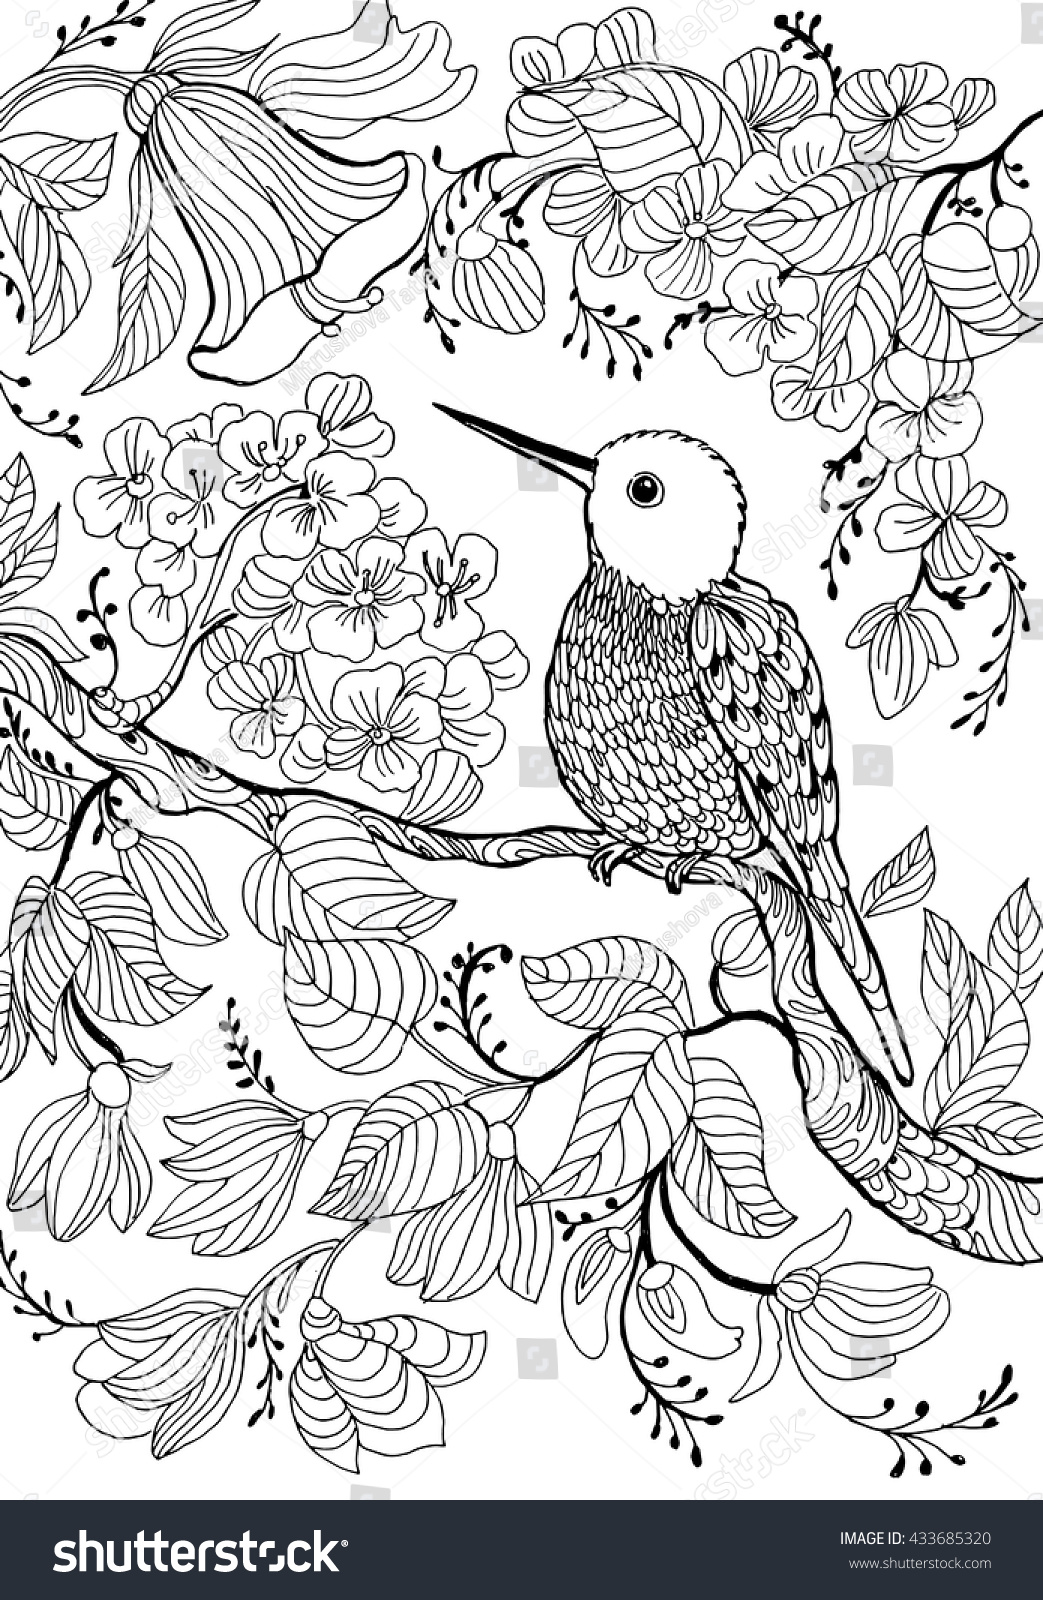 hummingbirds and flowersoutline drawingcoloring circling line drawingmonochrome - Hummingbird Flower Coloring Pages